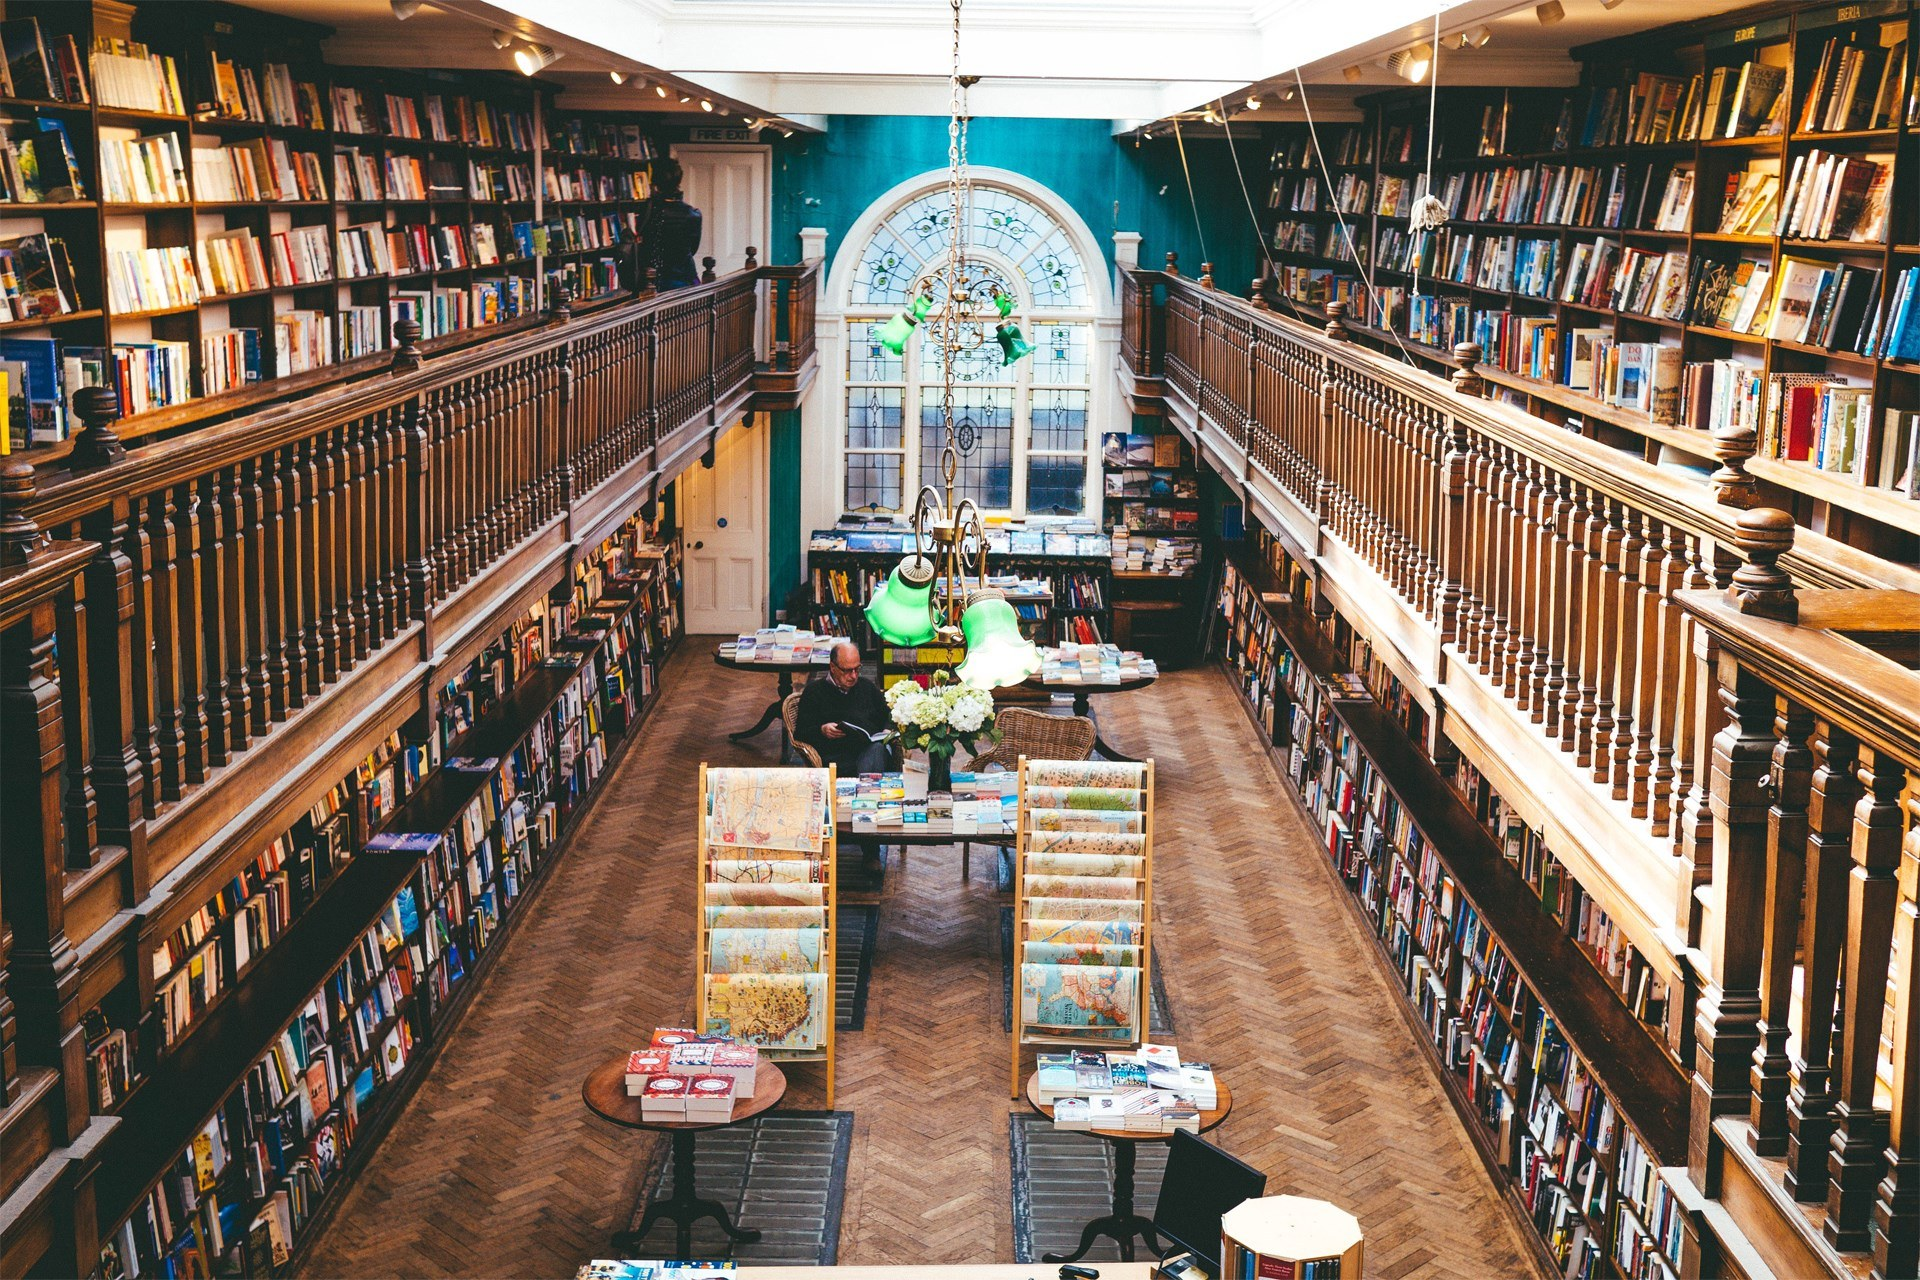 Find out what's going on in a bookshop near you